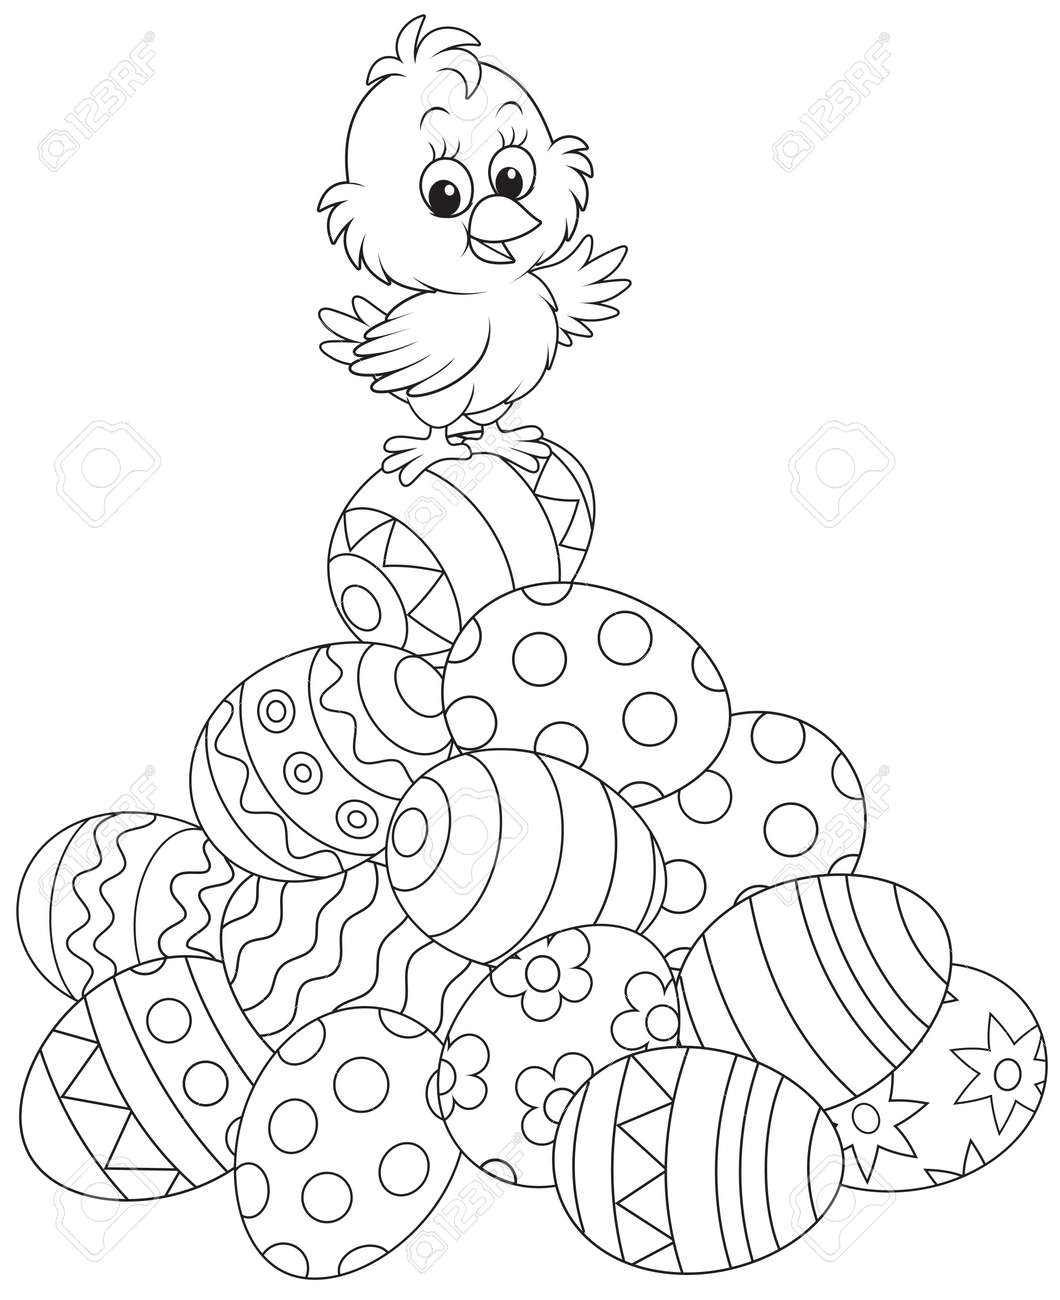 Easter Chick on top of a pile of painted eggs - 25998085